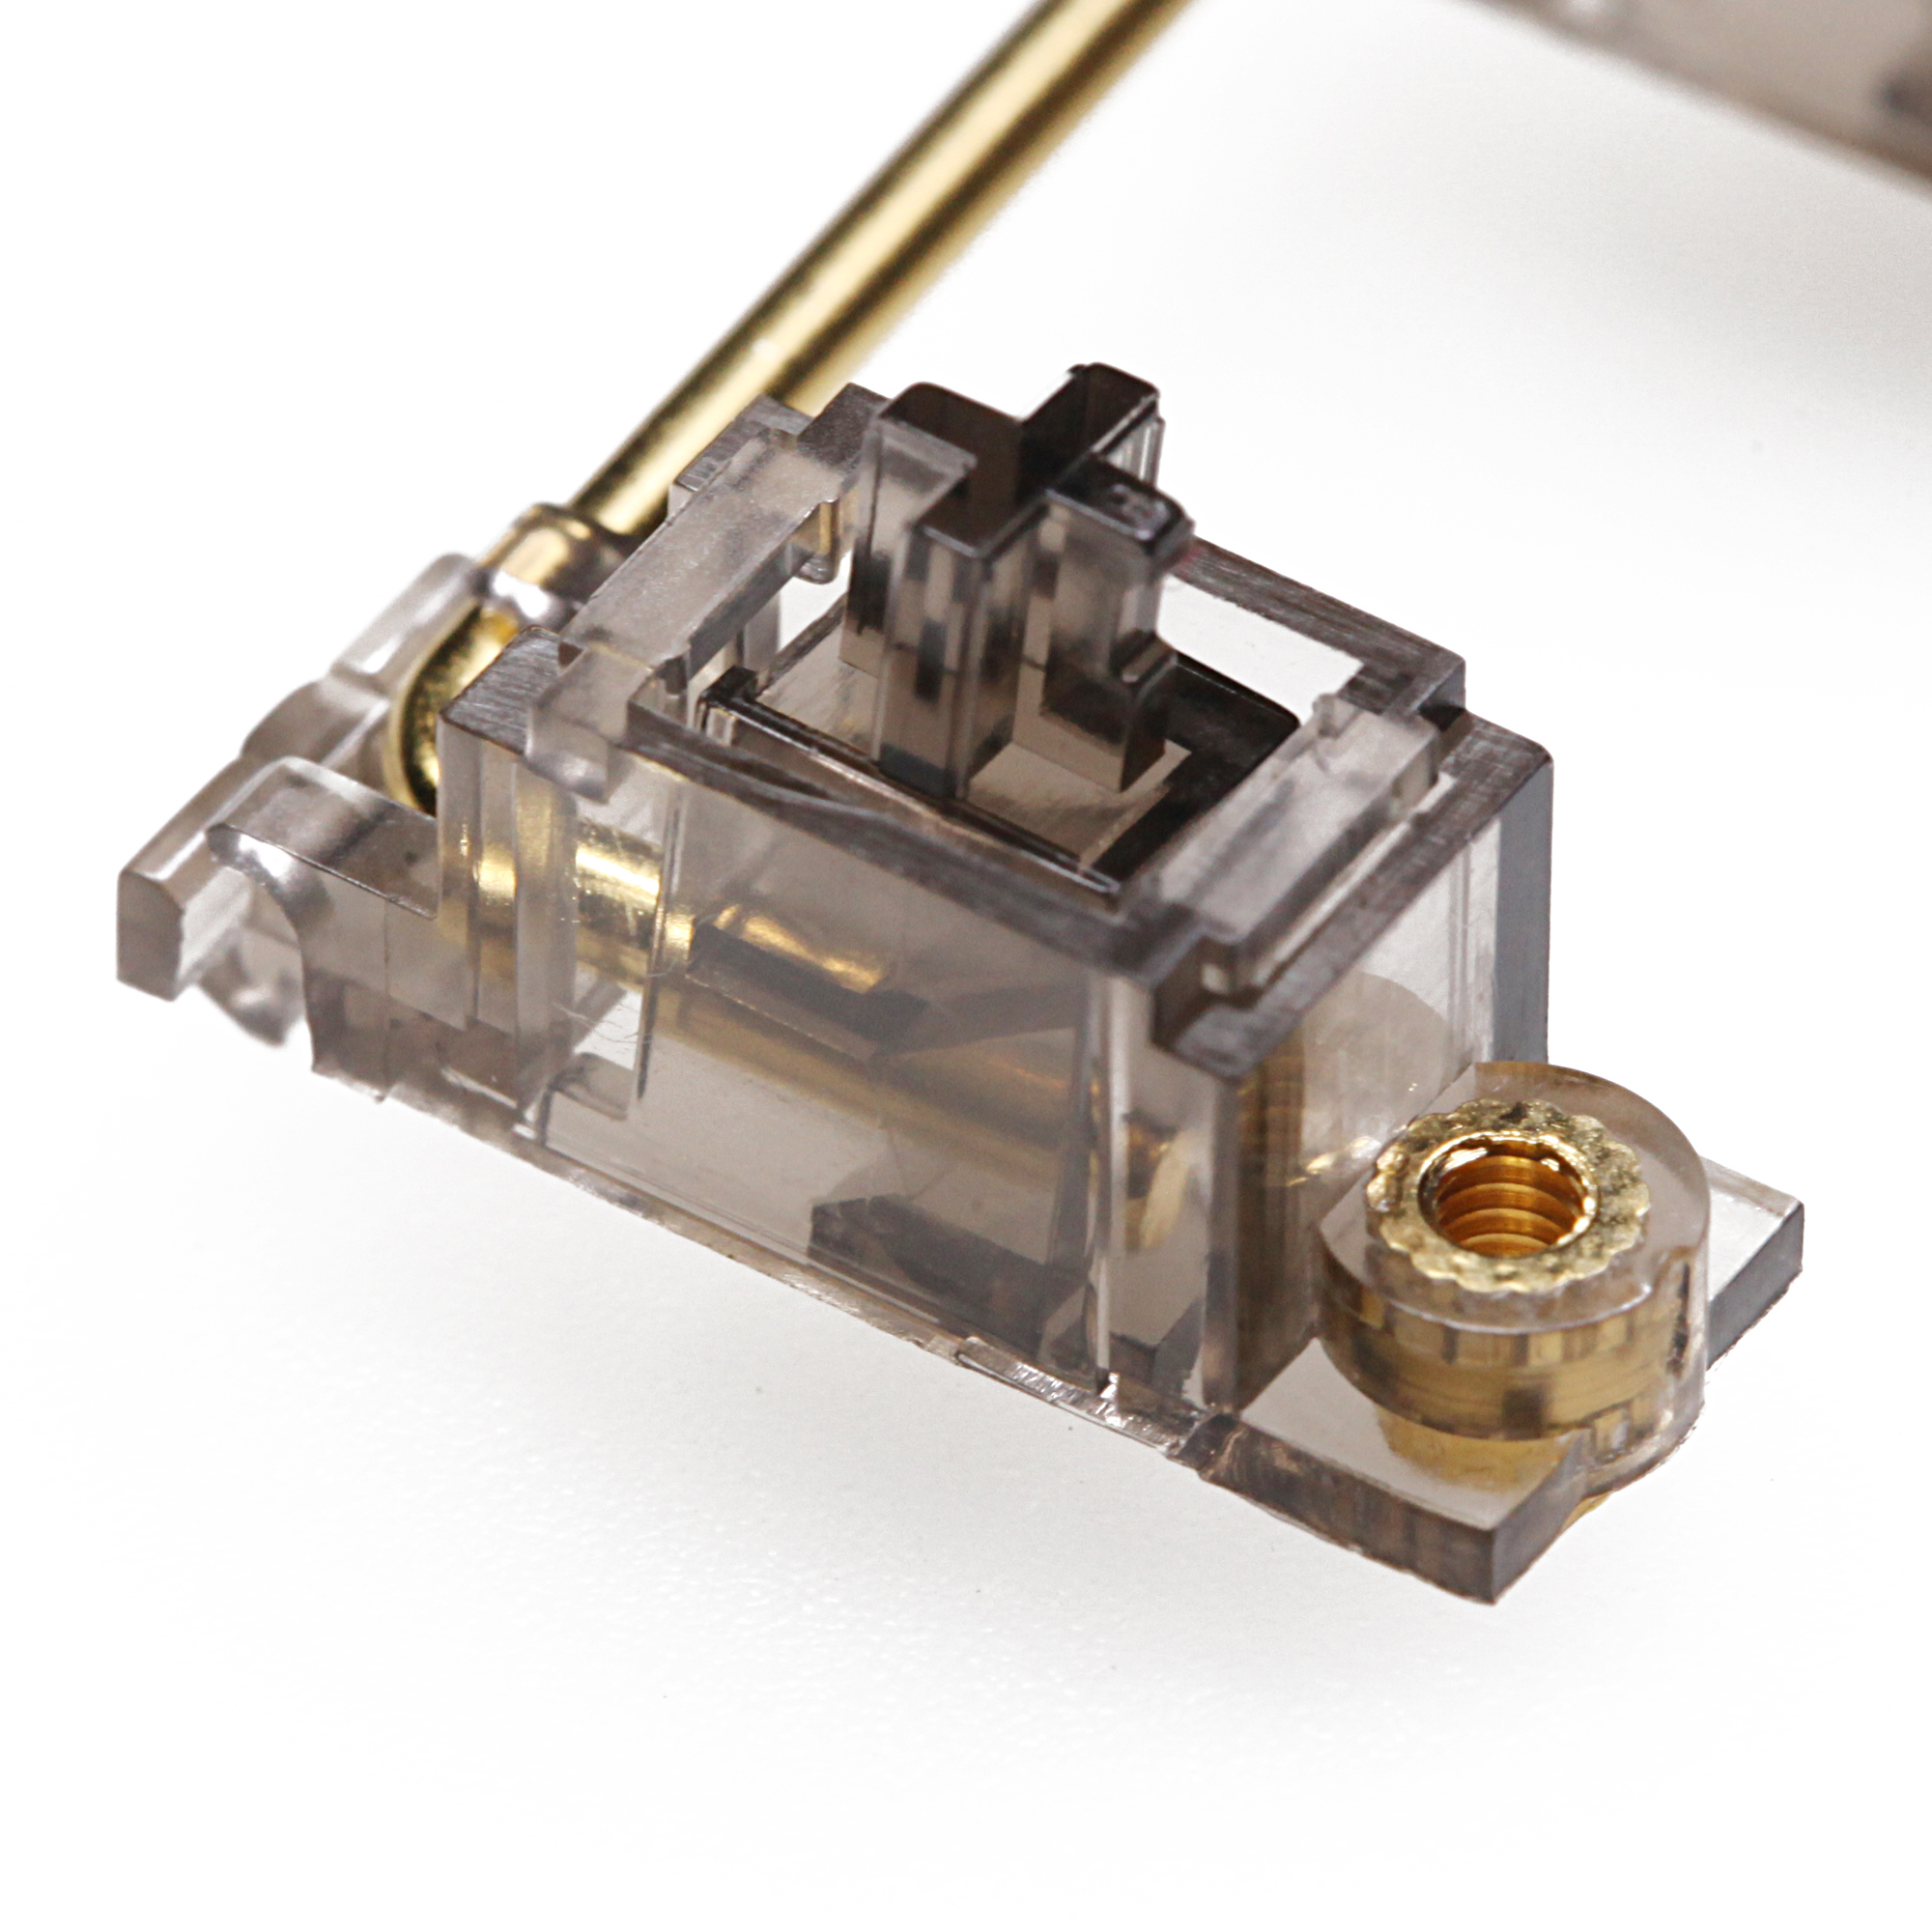 Everglide Black Transparent Gold Plated Pcb Screw In Stabilizer For Custom Mechanical Keyboard Gh60 Xd64 Xd84 6.25x 2x 7x Xd87